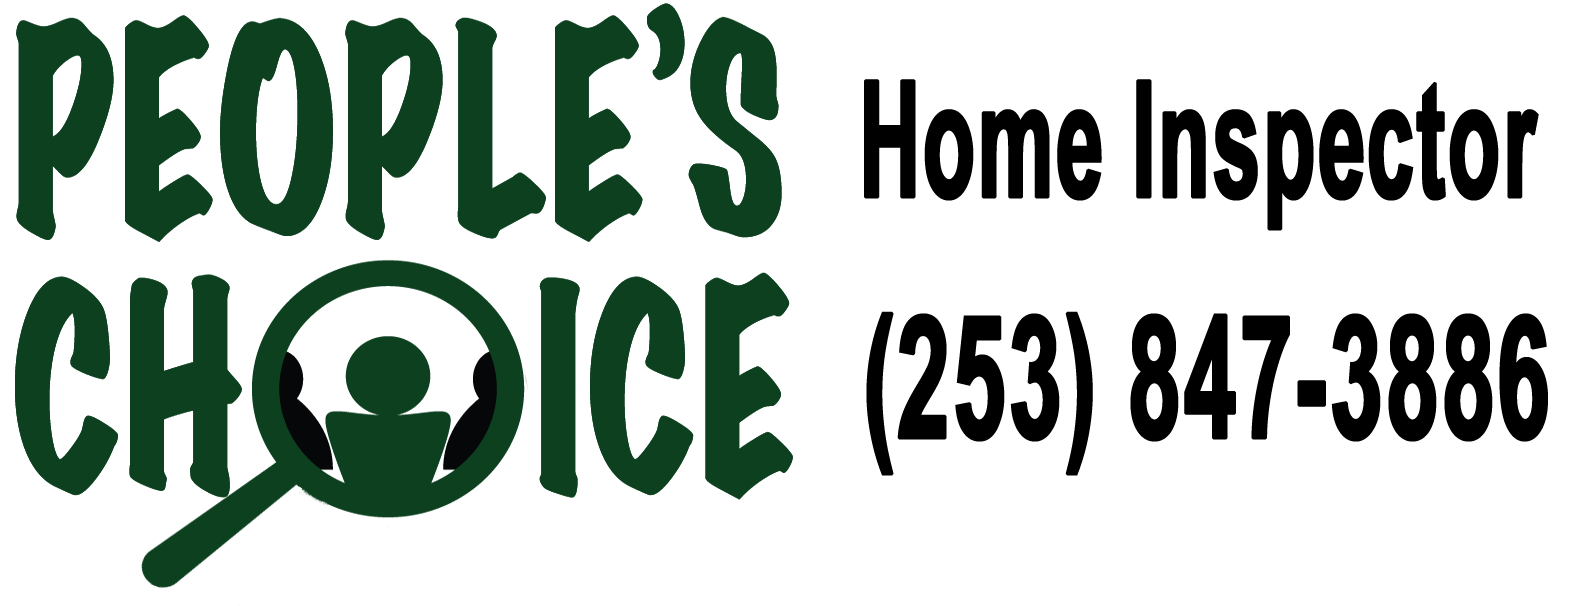 People's Choice logo